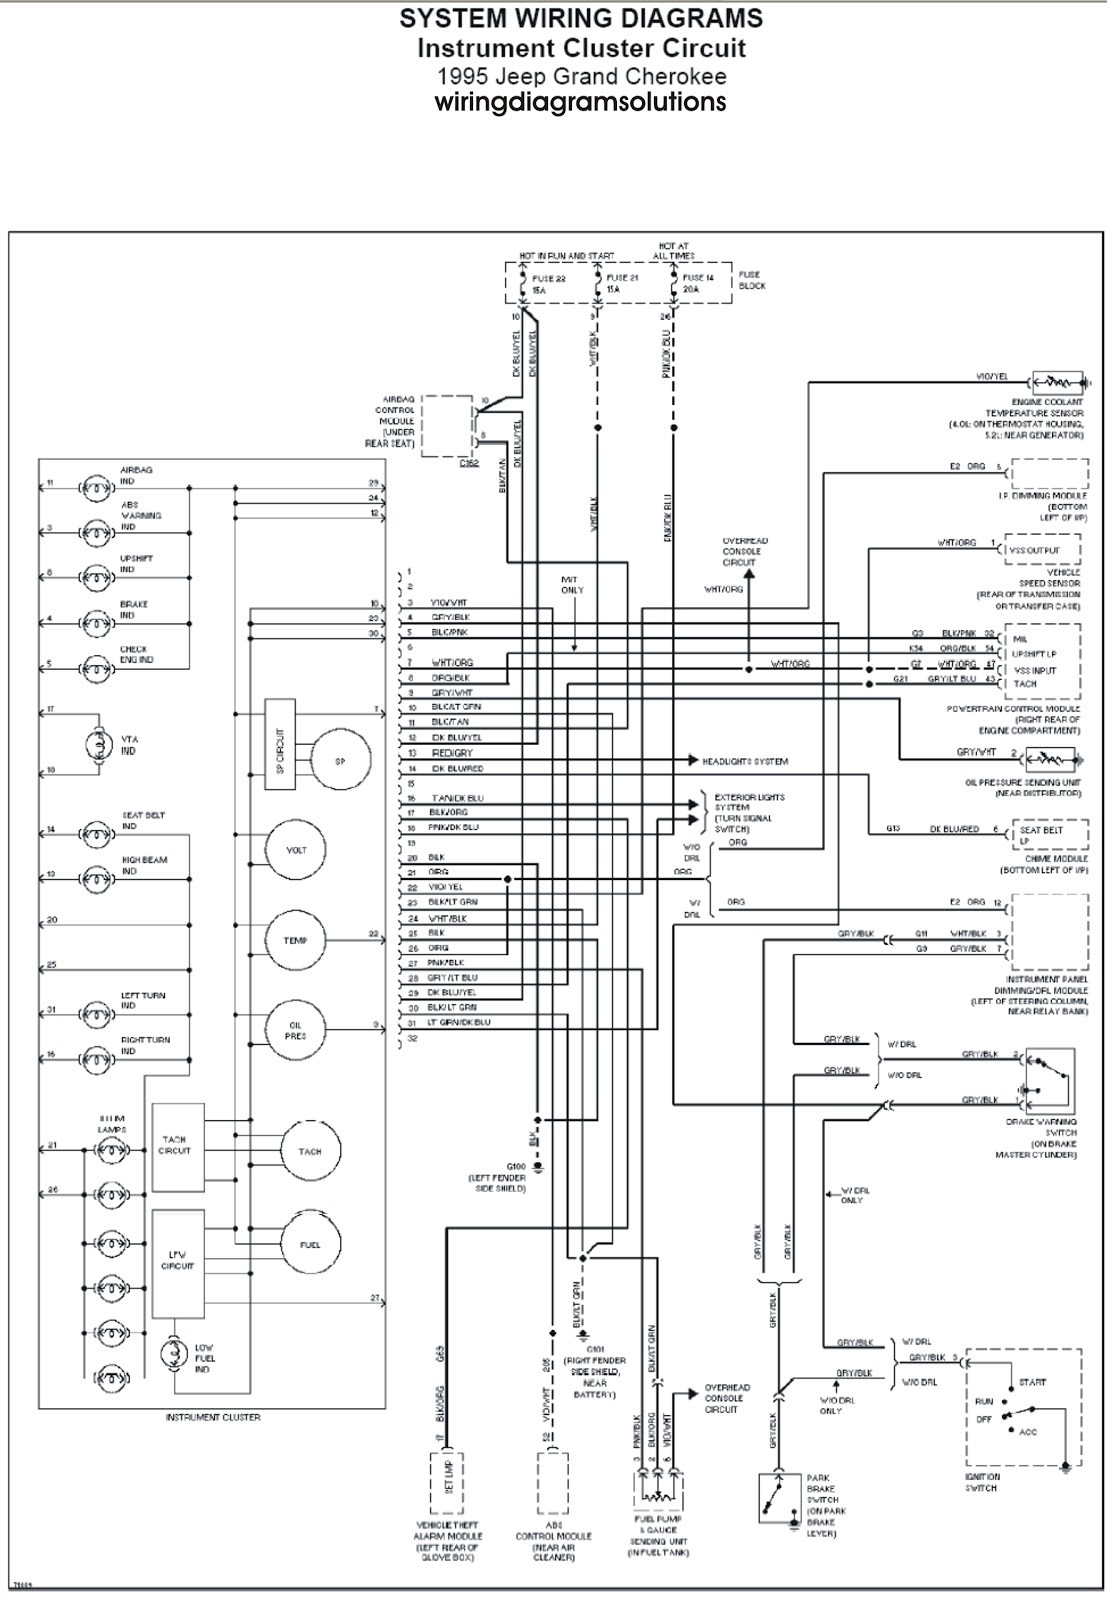 jeep xj infinity wiring diagram - ranger rt roadtrek wiring diagram for wiring  diagram schematics  wiring diagram schematics